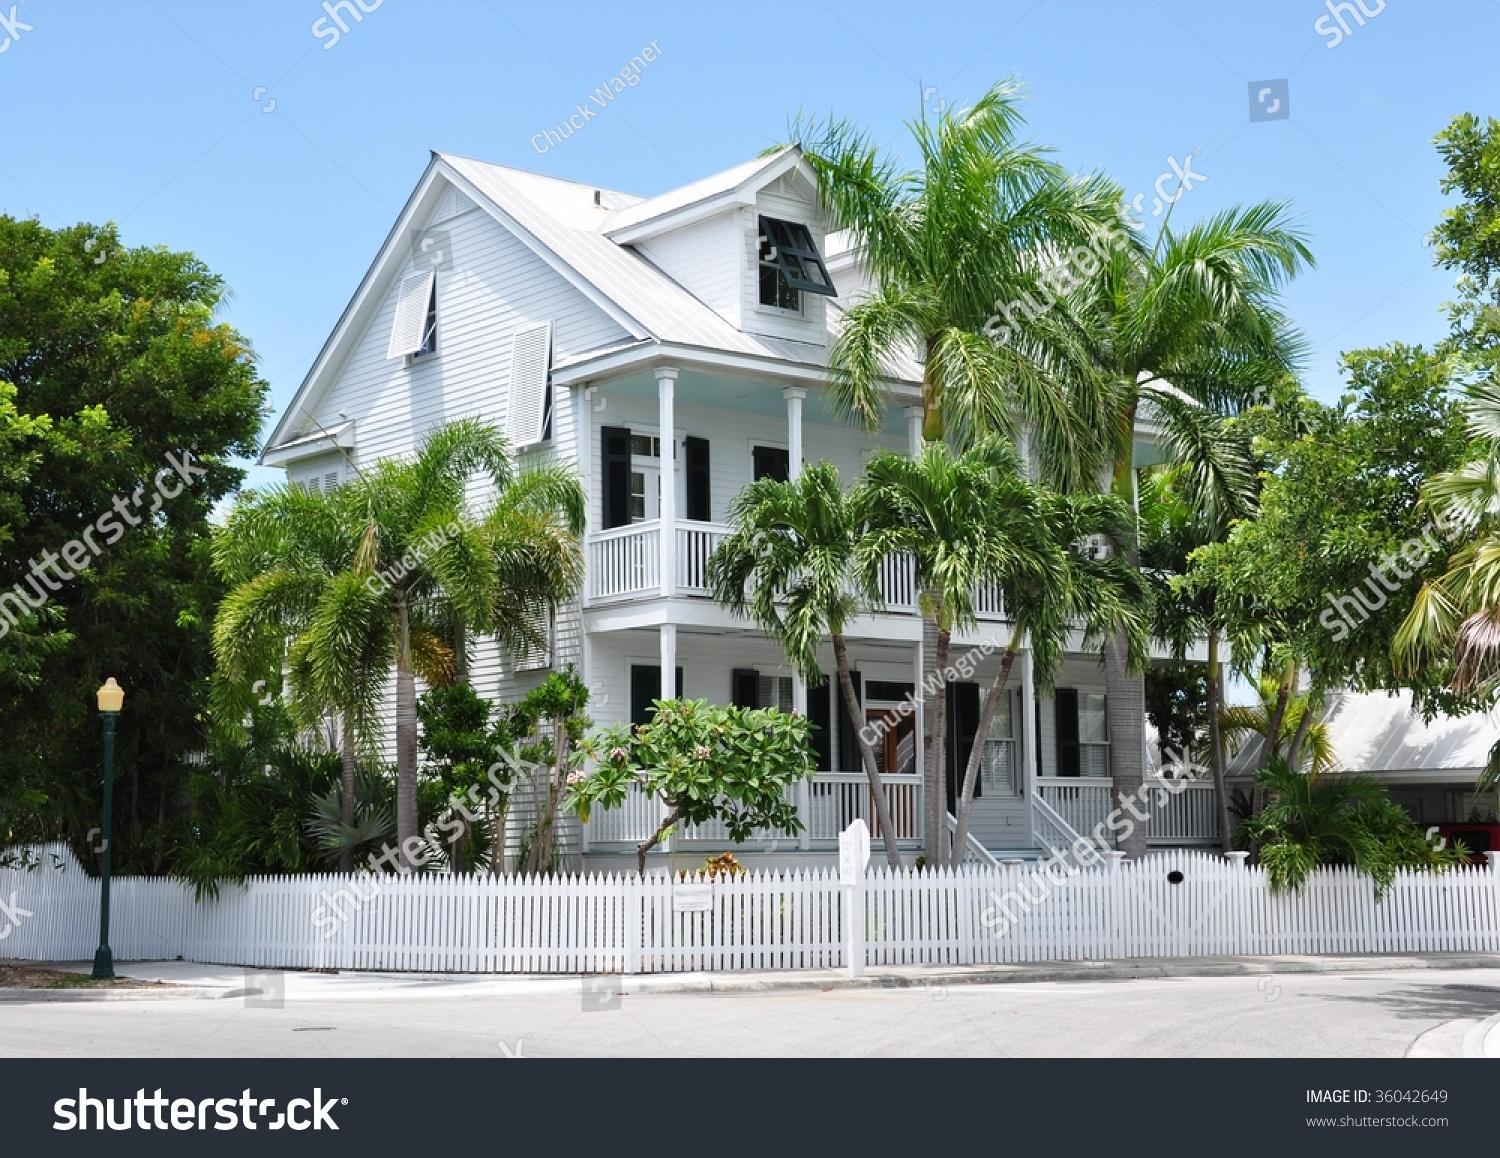 Key West Style Architecture Stock Photo 36042649